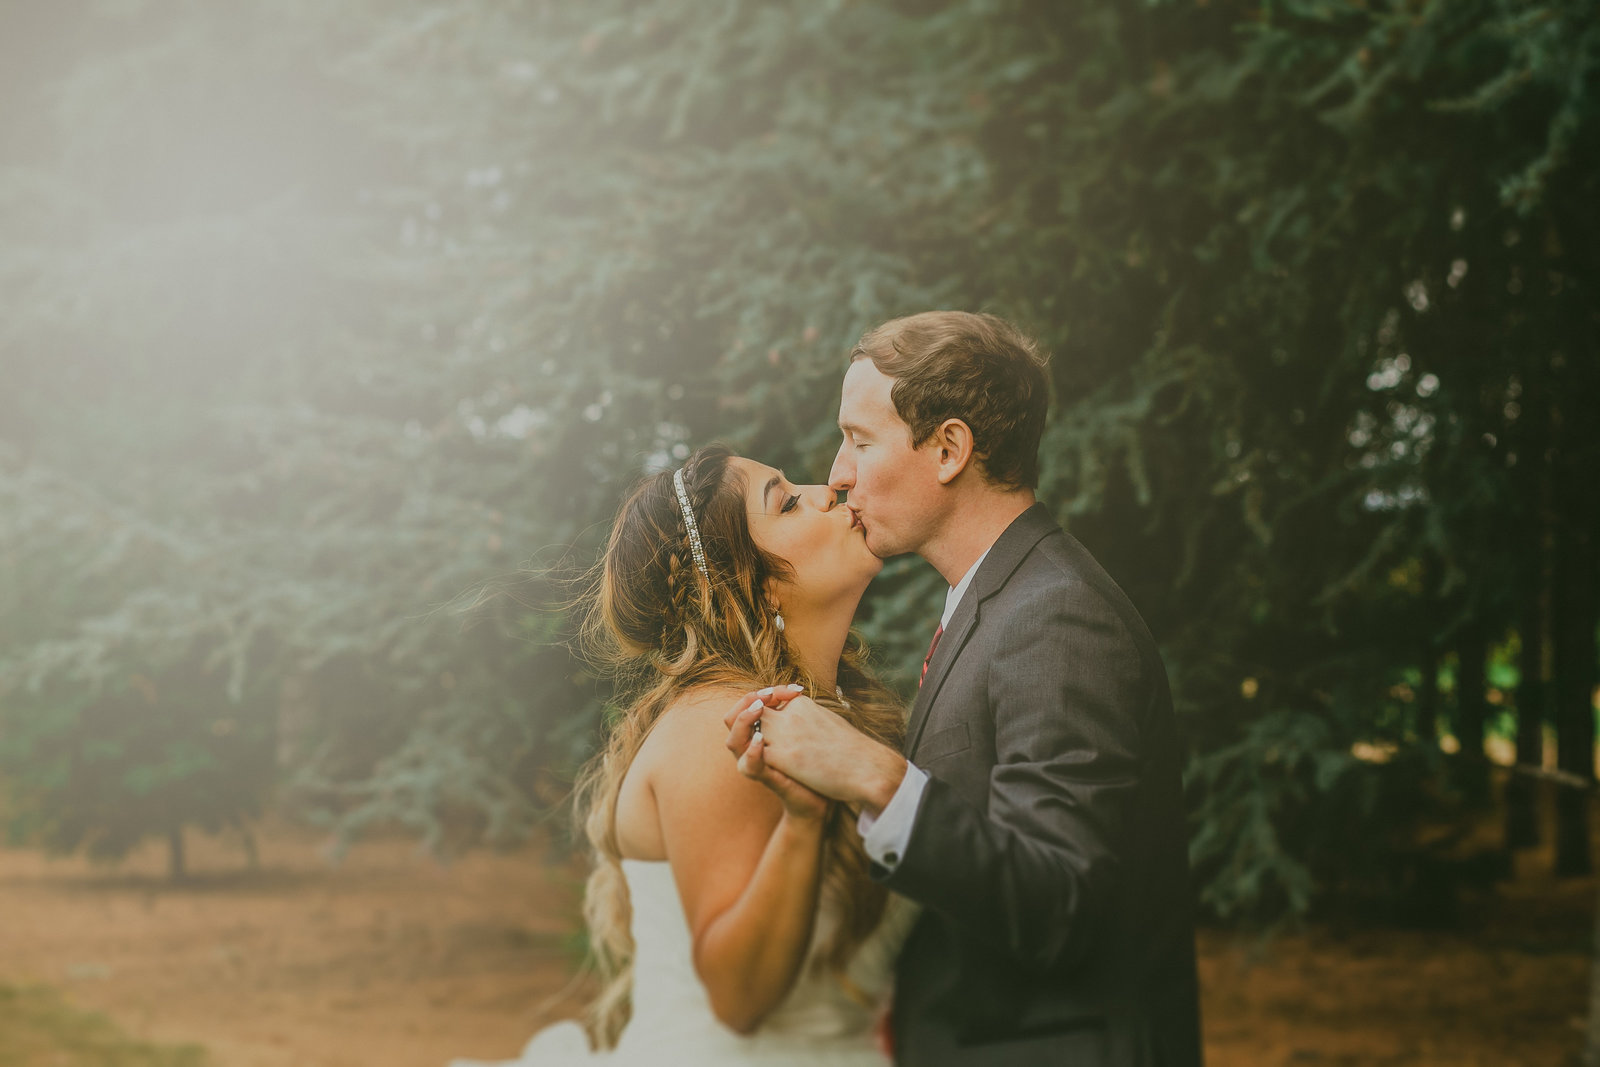 Best Wedding Photography in Portalnd Oregon | Bride and groom kissing outside | Susie Moreno Photography